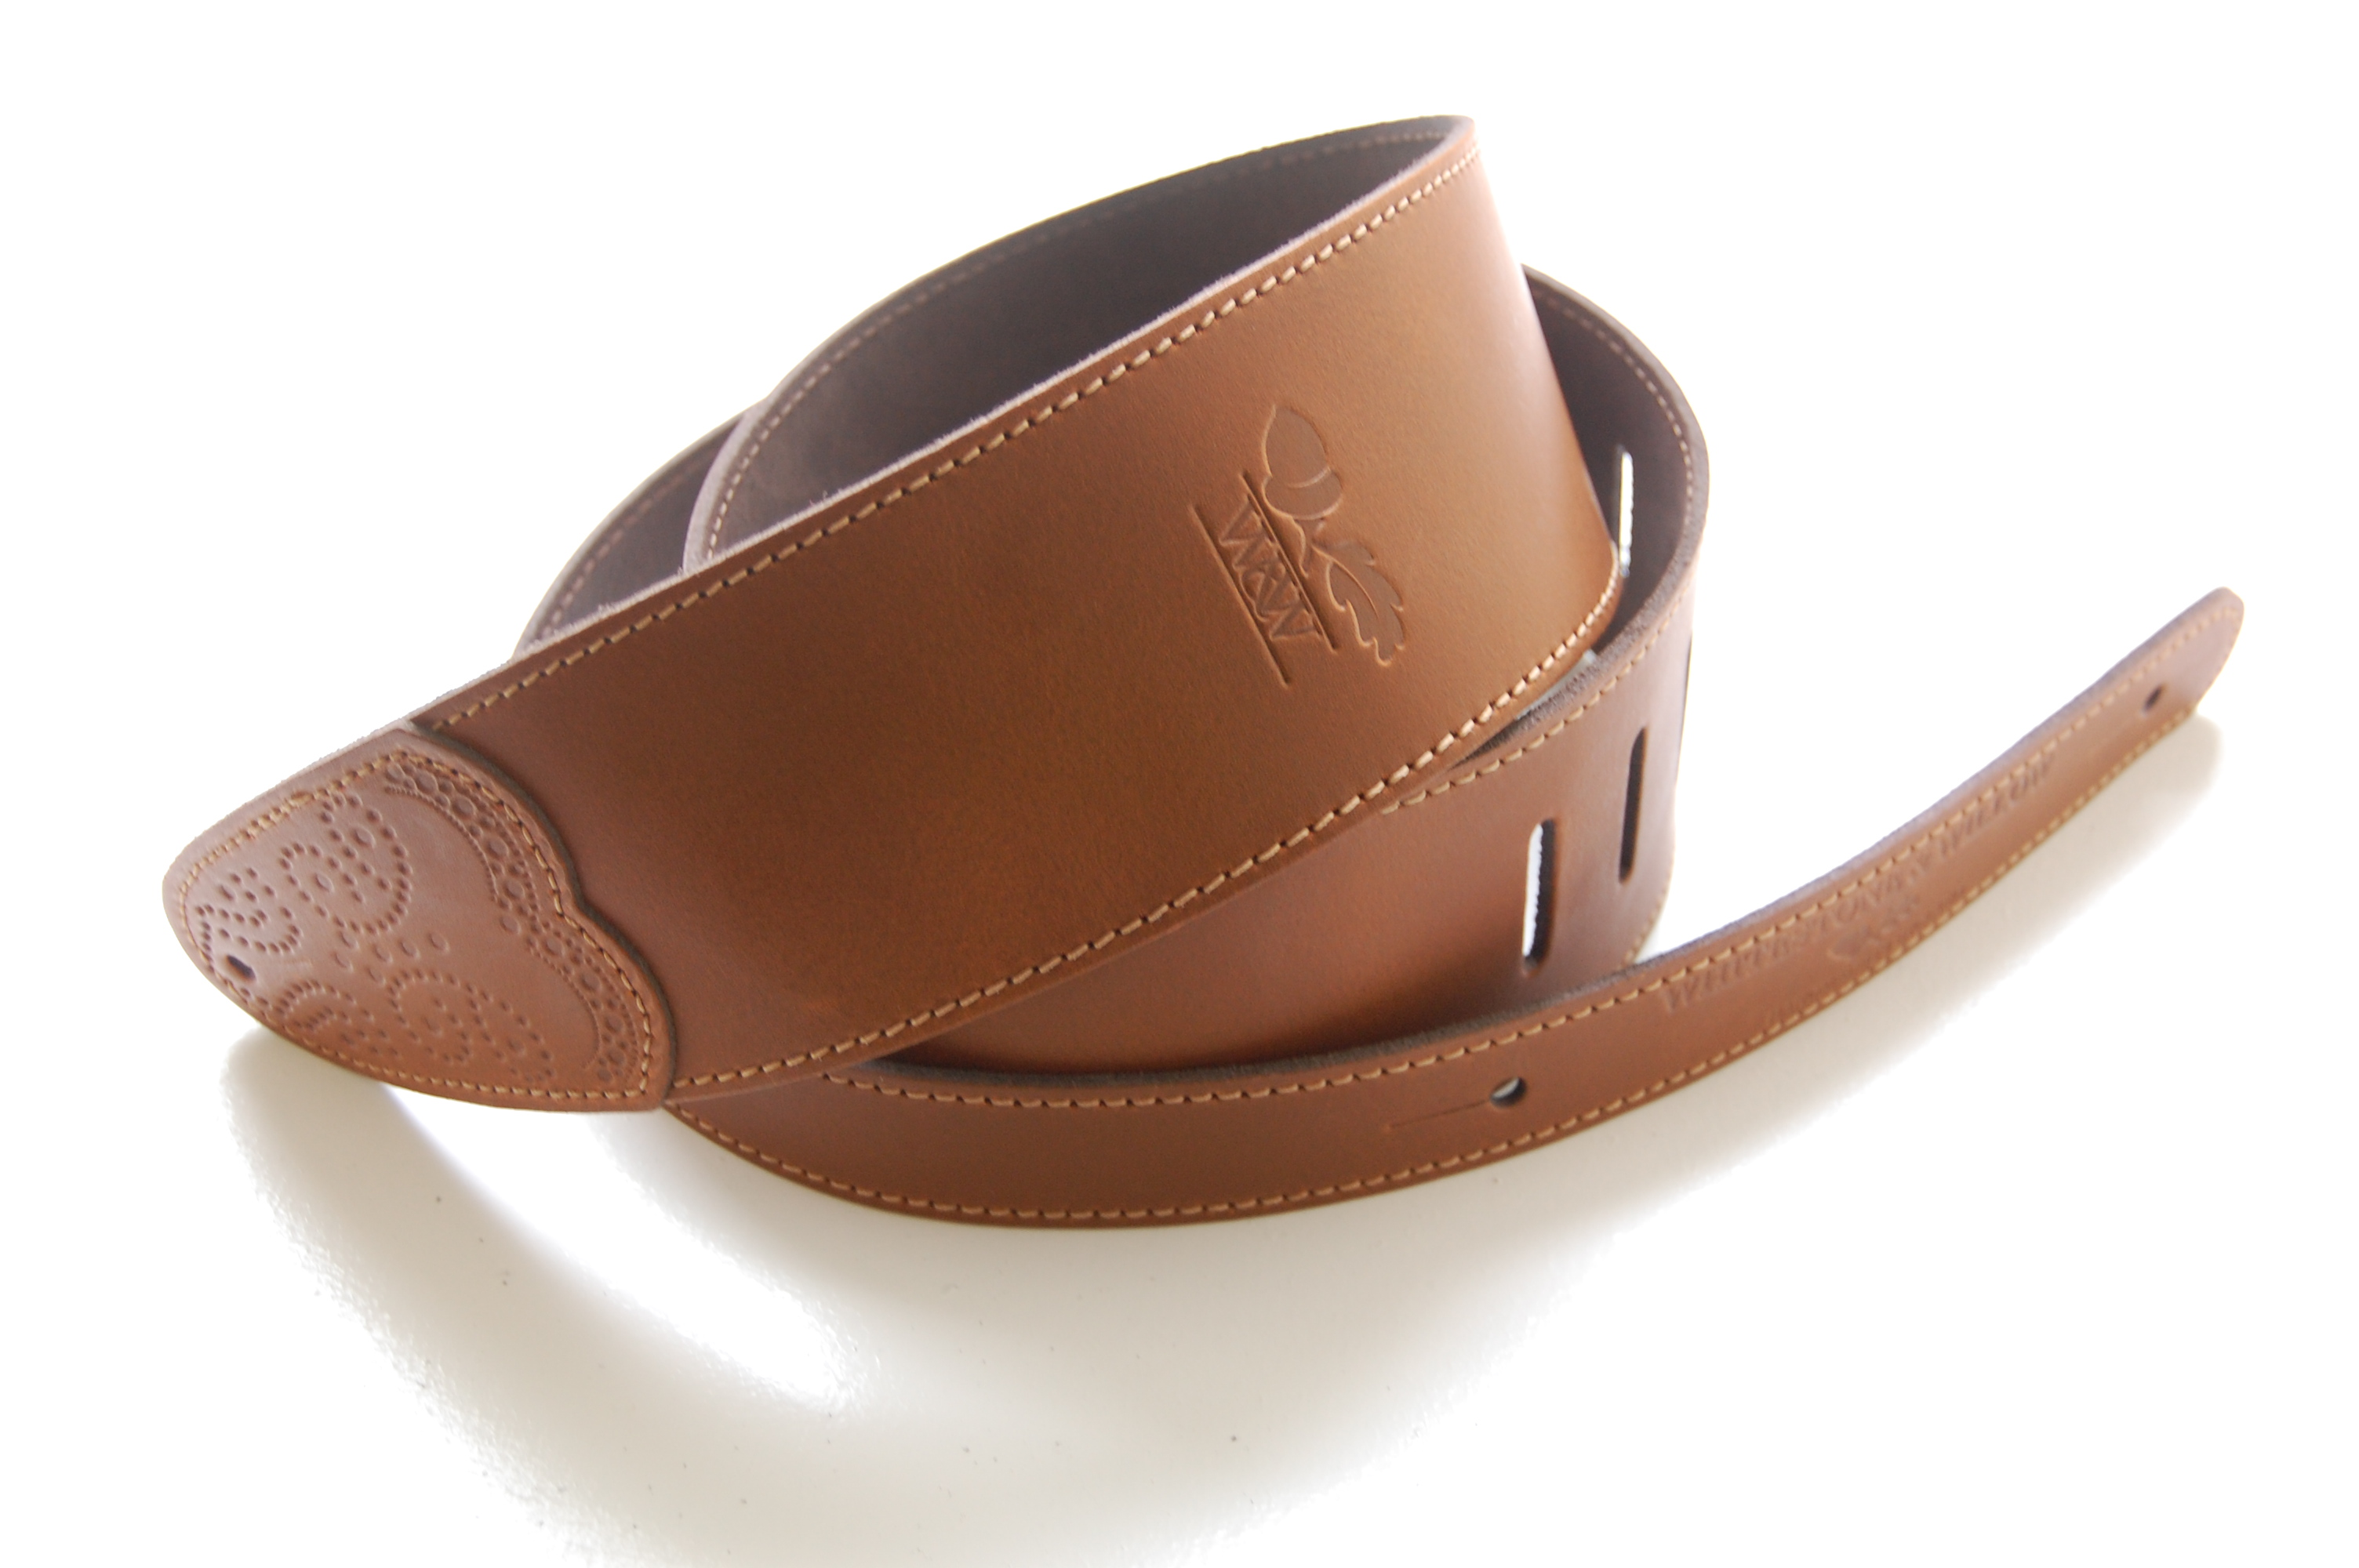 W&W Deluxe Leather Guitar Strap - Tan